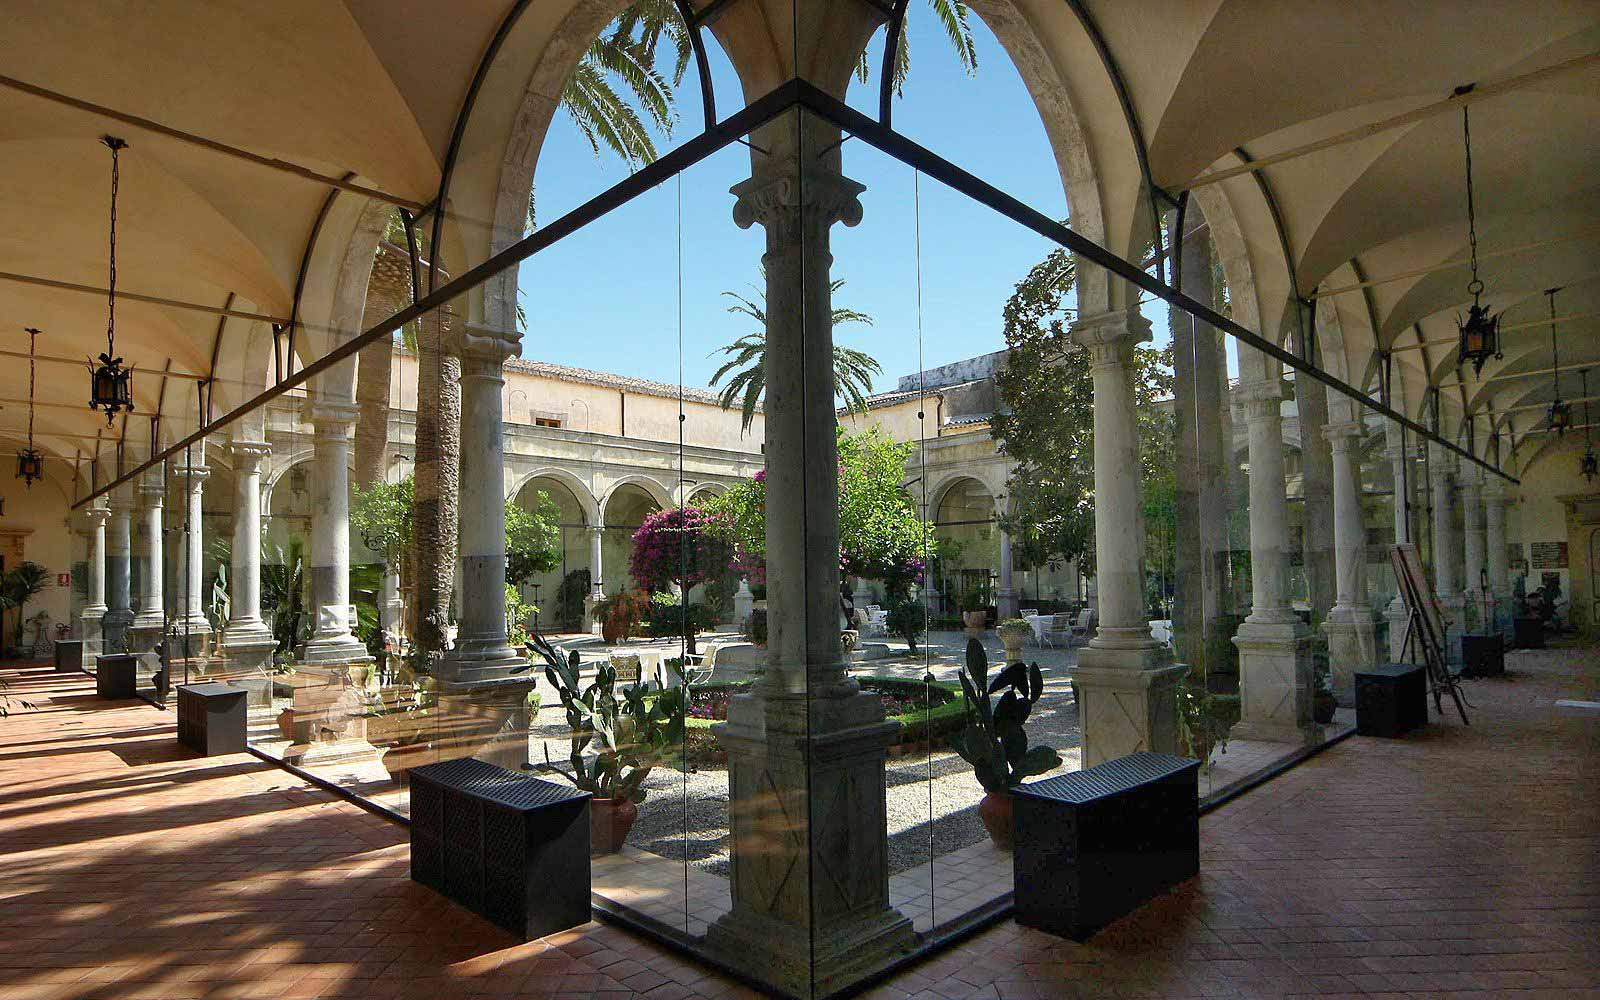 The Old Cloister at San Domenico Palace Hotel